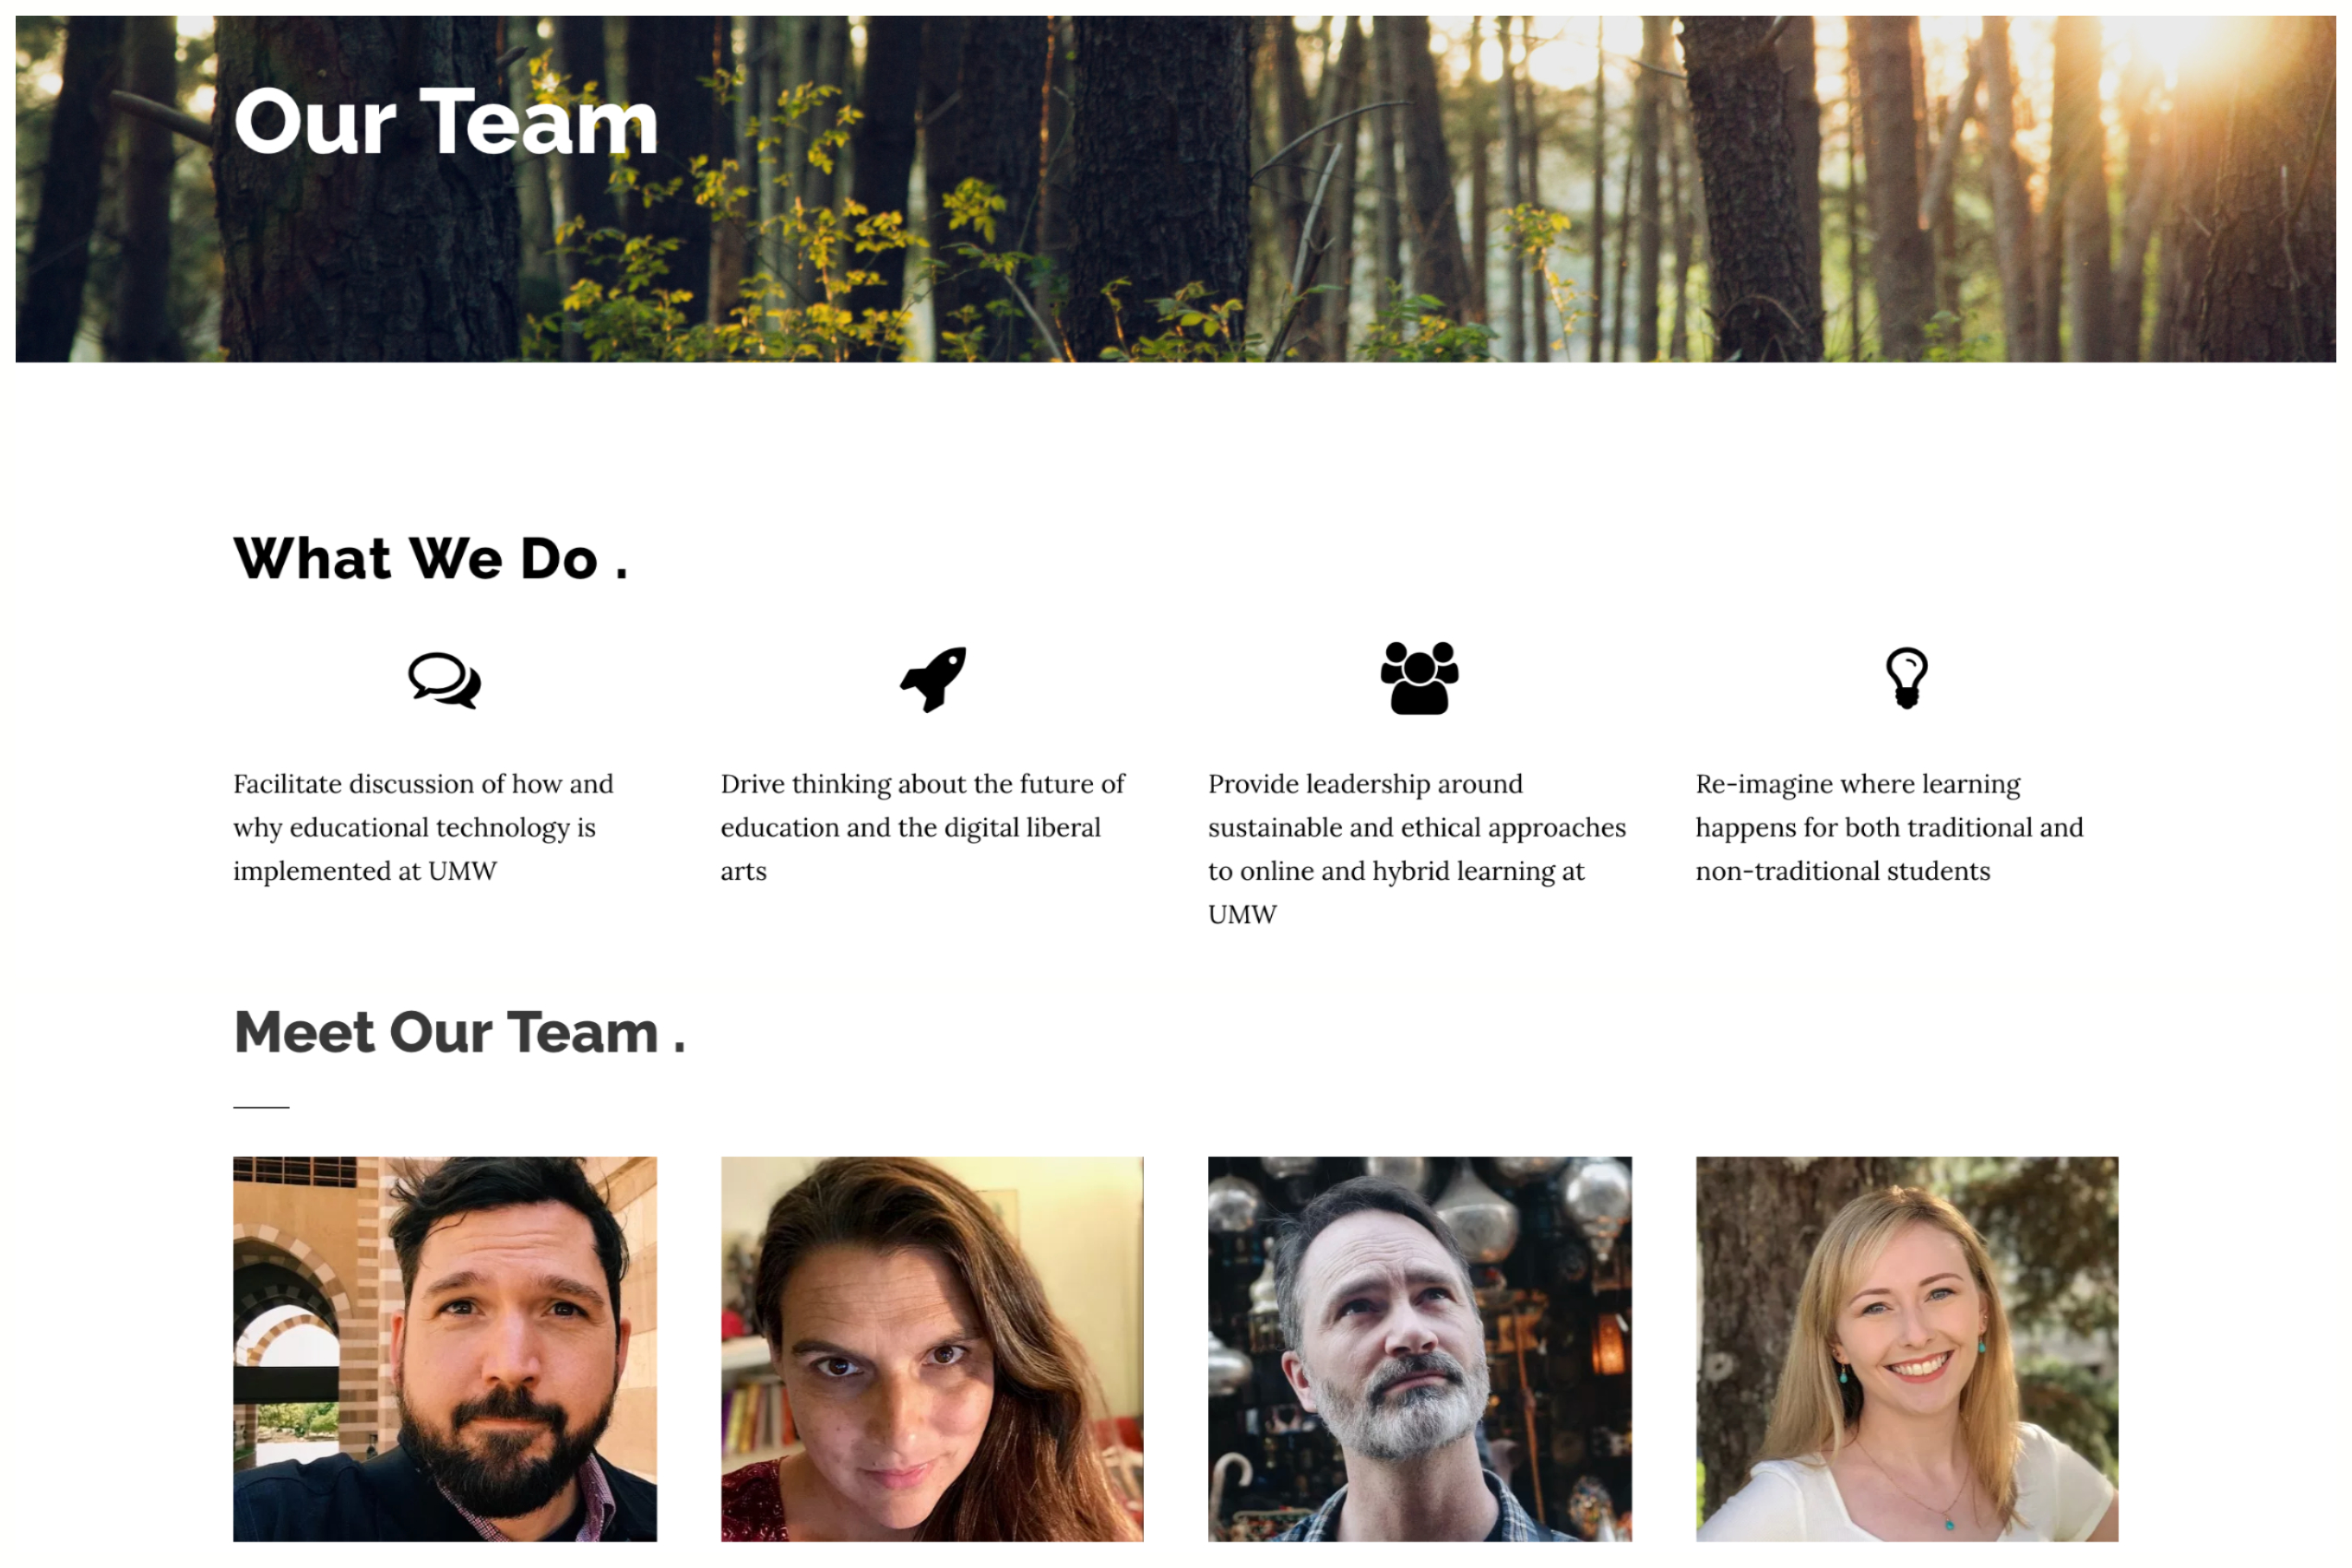 Our Team page on the DTLT website